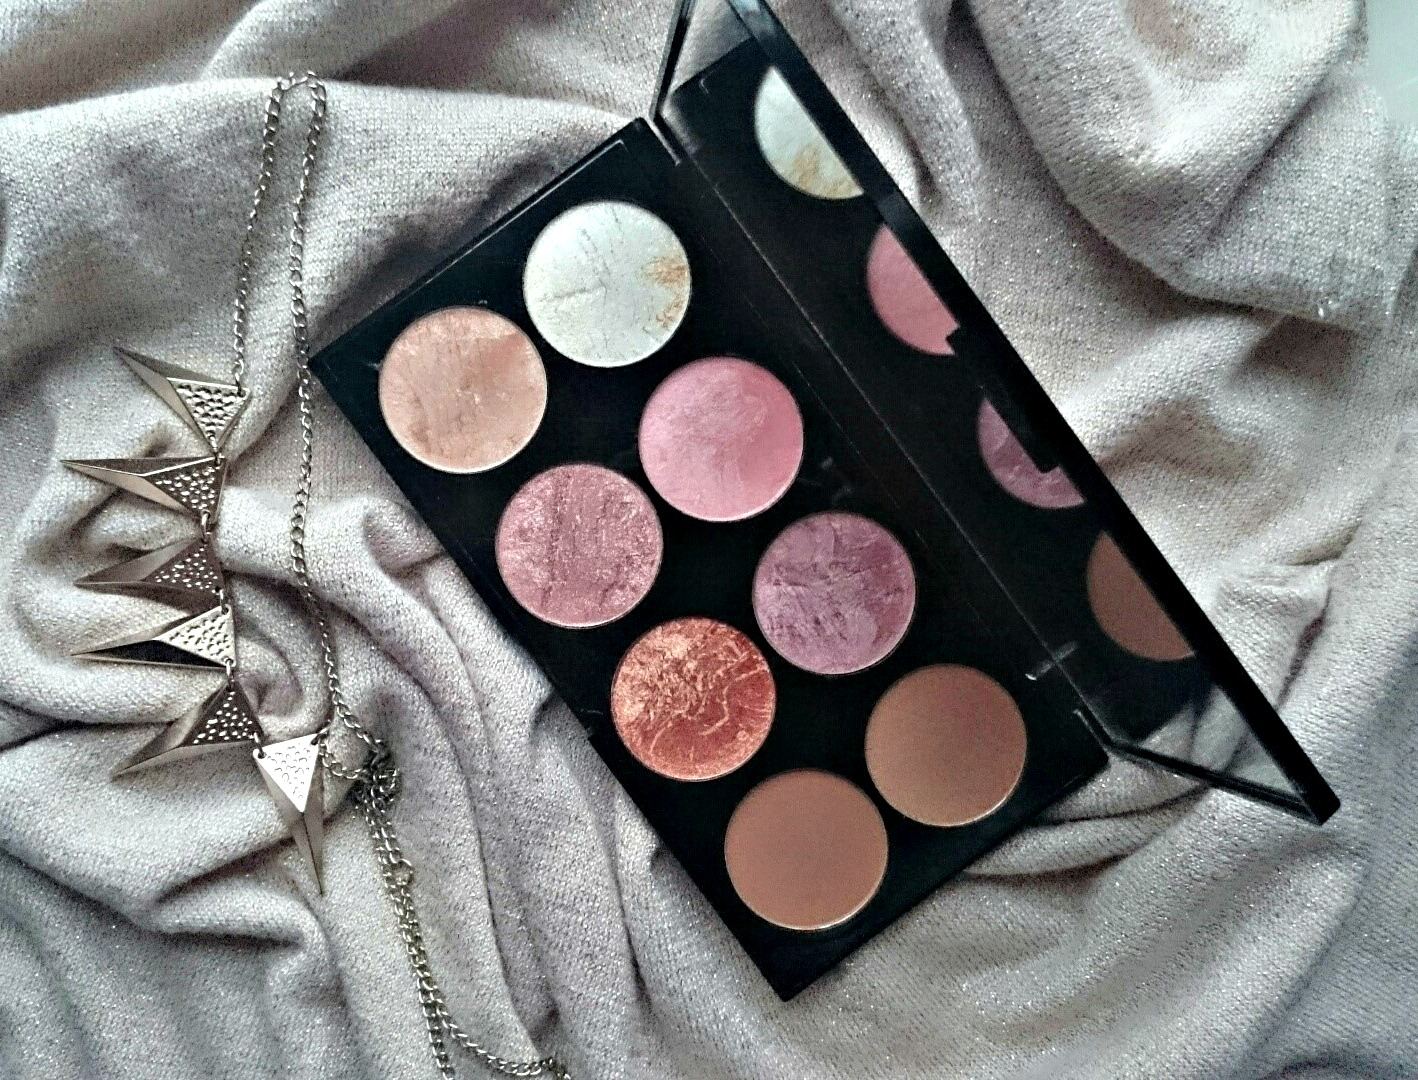 Makeup Revolution Golden Sugar blush palette